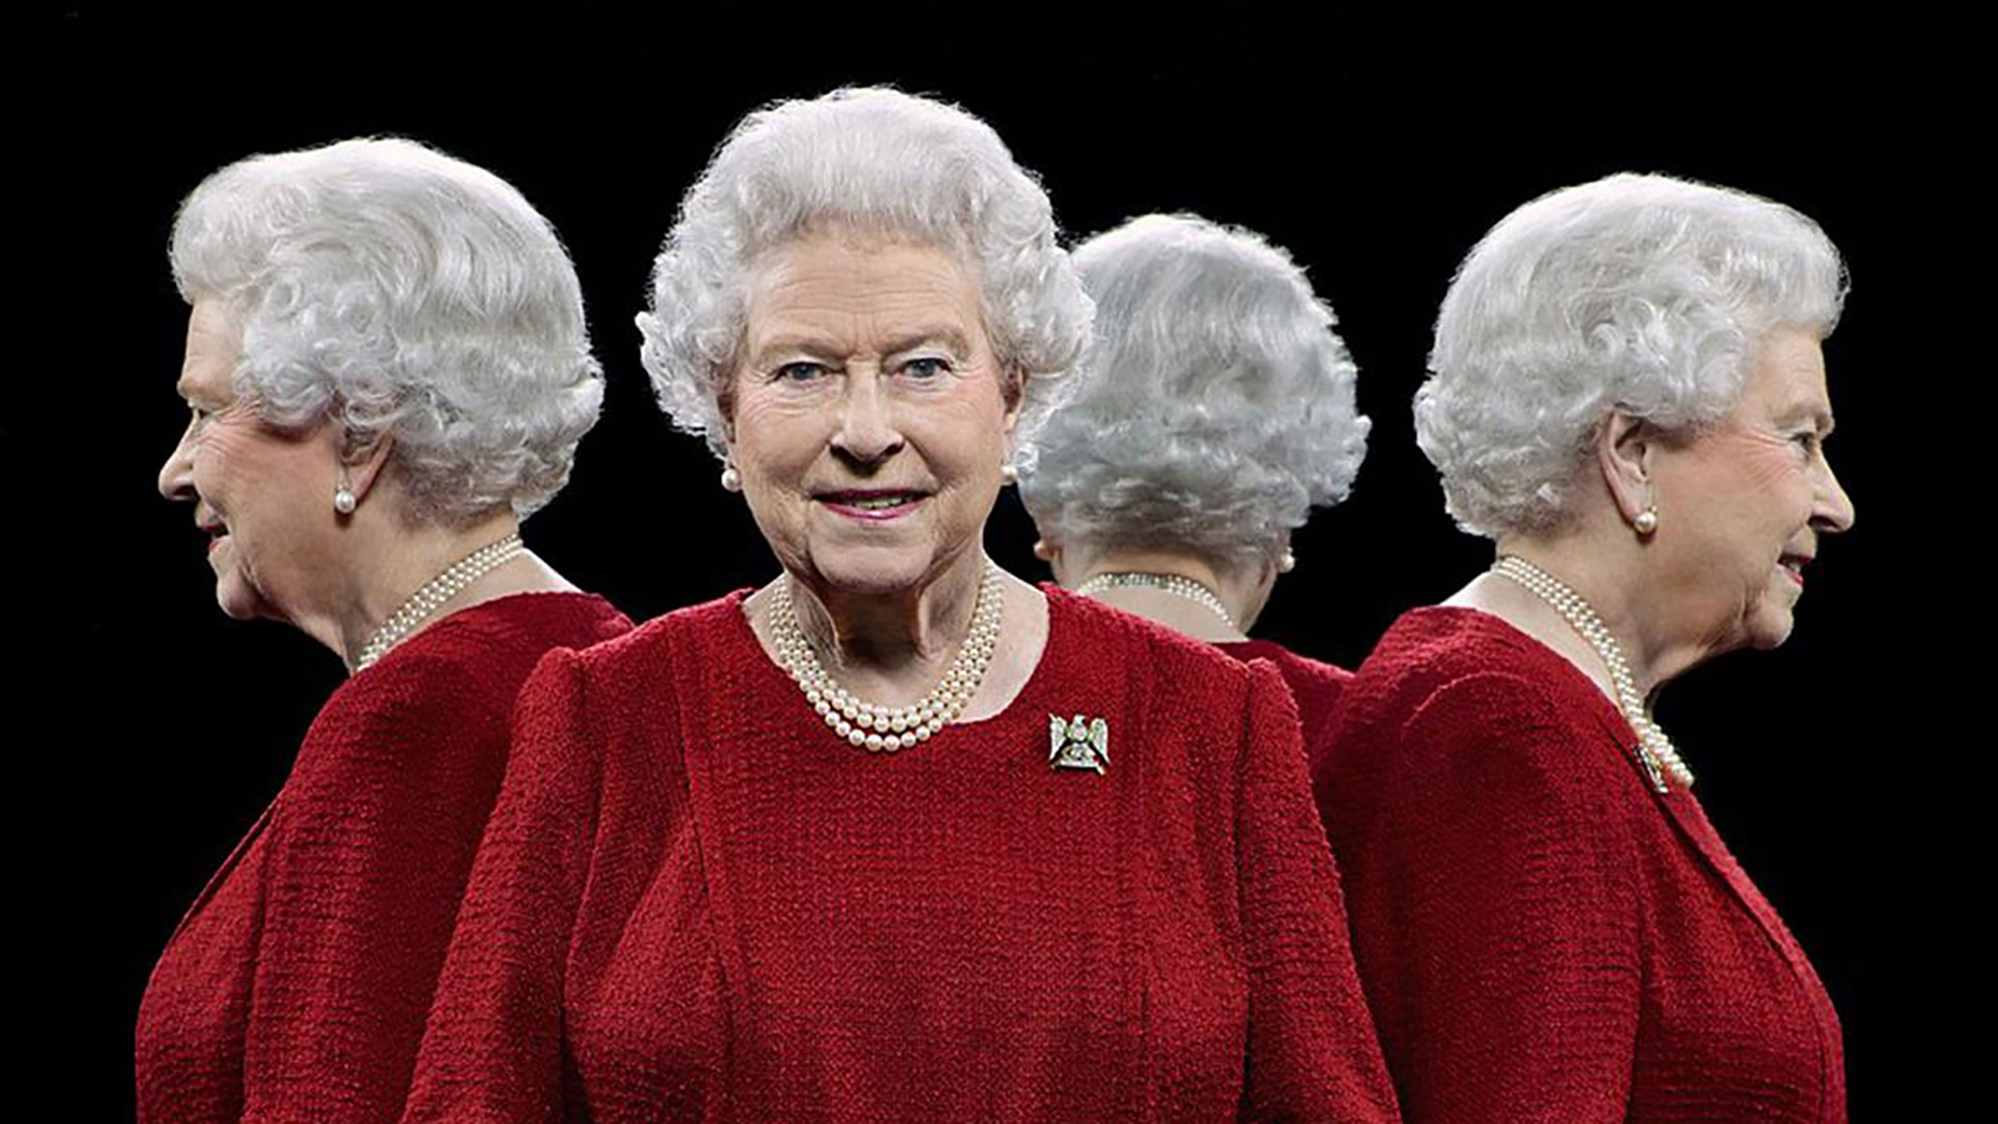 Amazing new photos of the Queen like you've never seen her